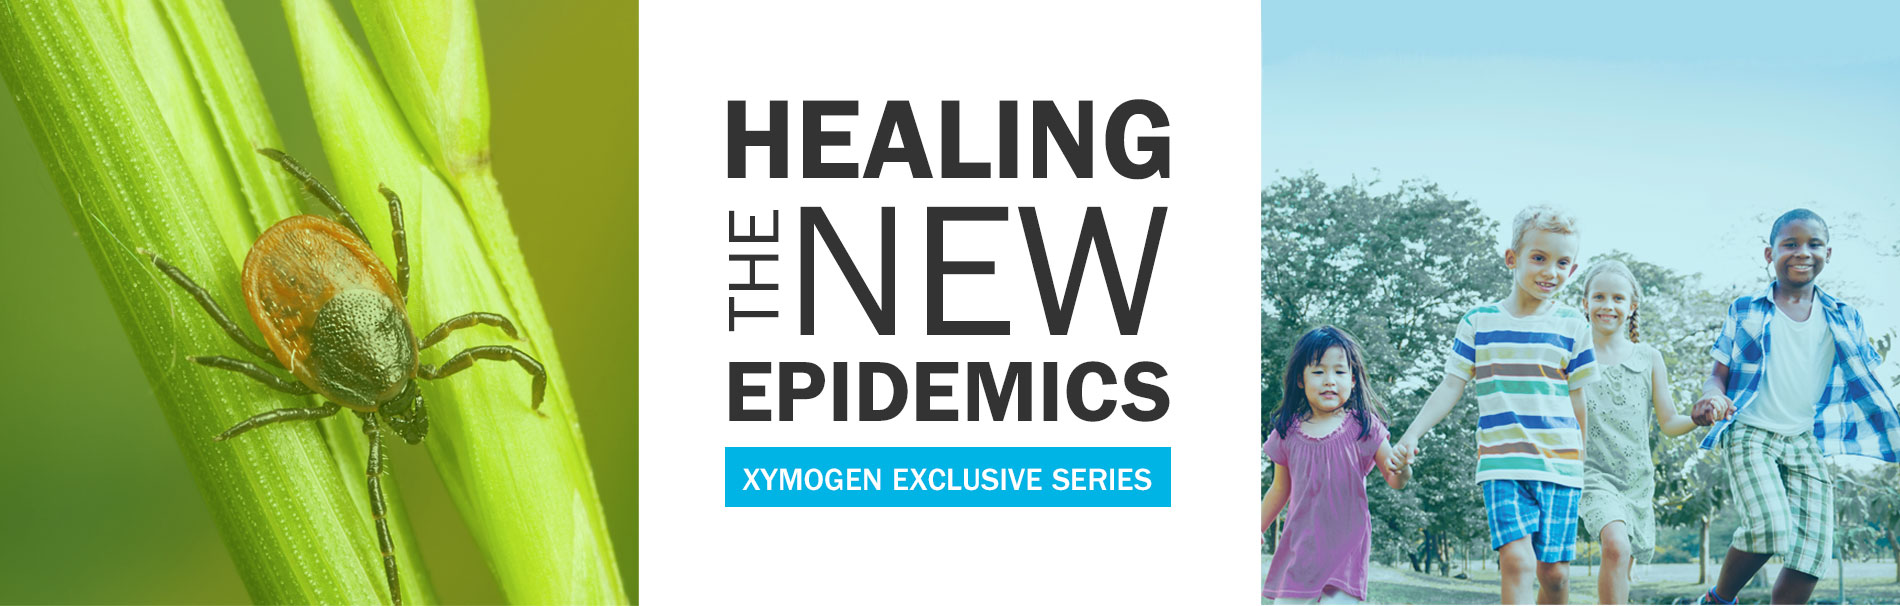 healing the new epidemics